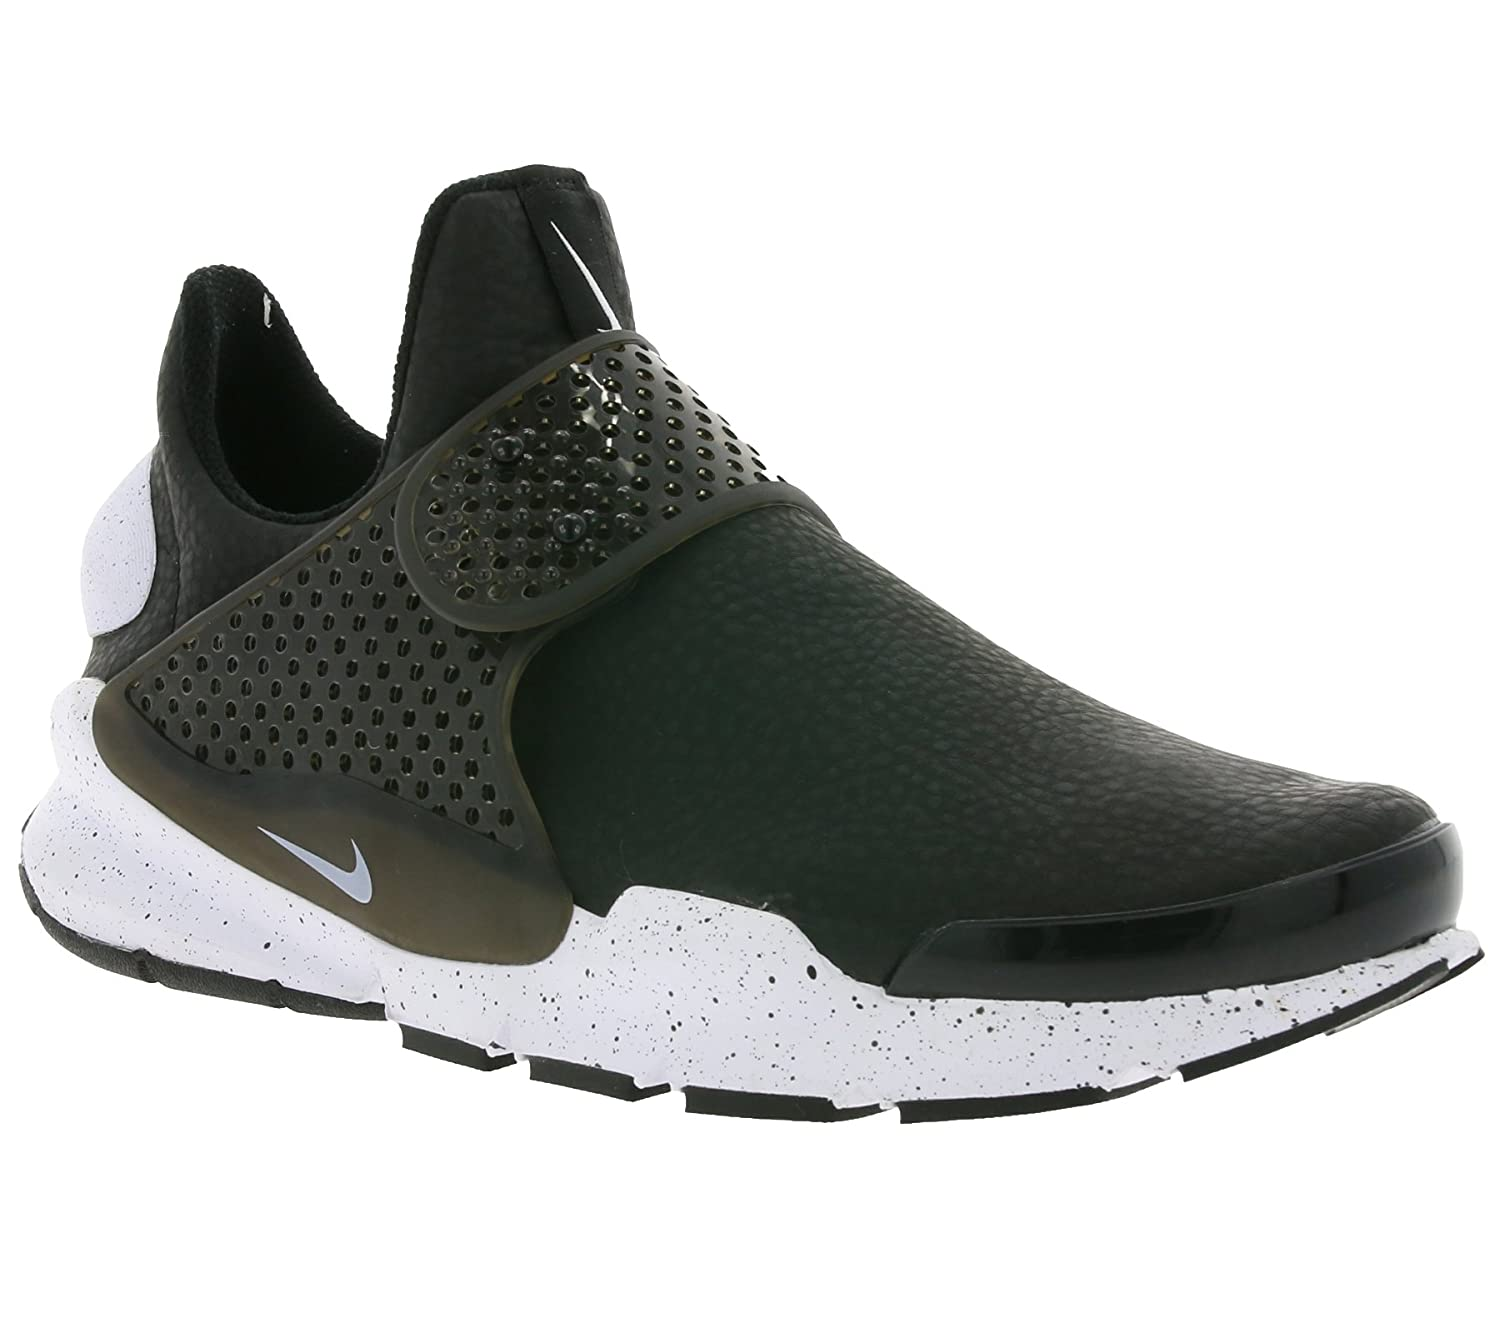 half off 47c83 29879 Nike SOCK DART PRM WOMENS running-shoes 881186-001_7 - BLACK/WHITE-BLACK